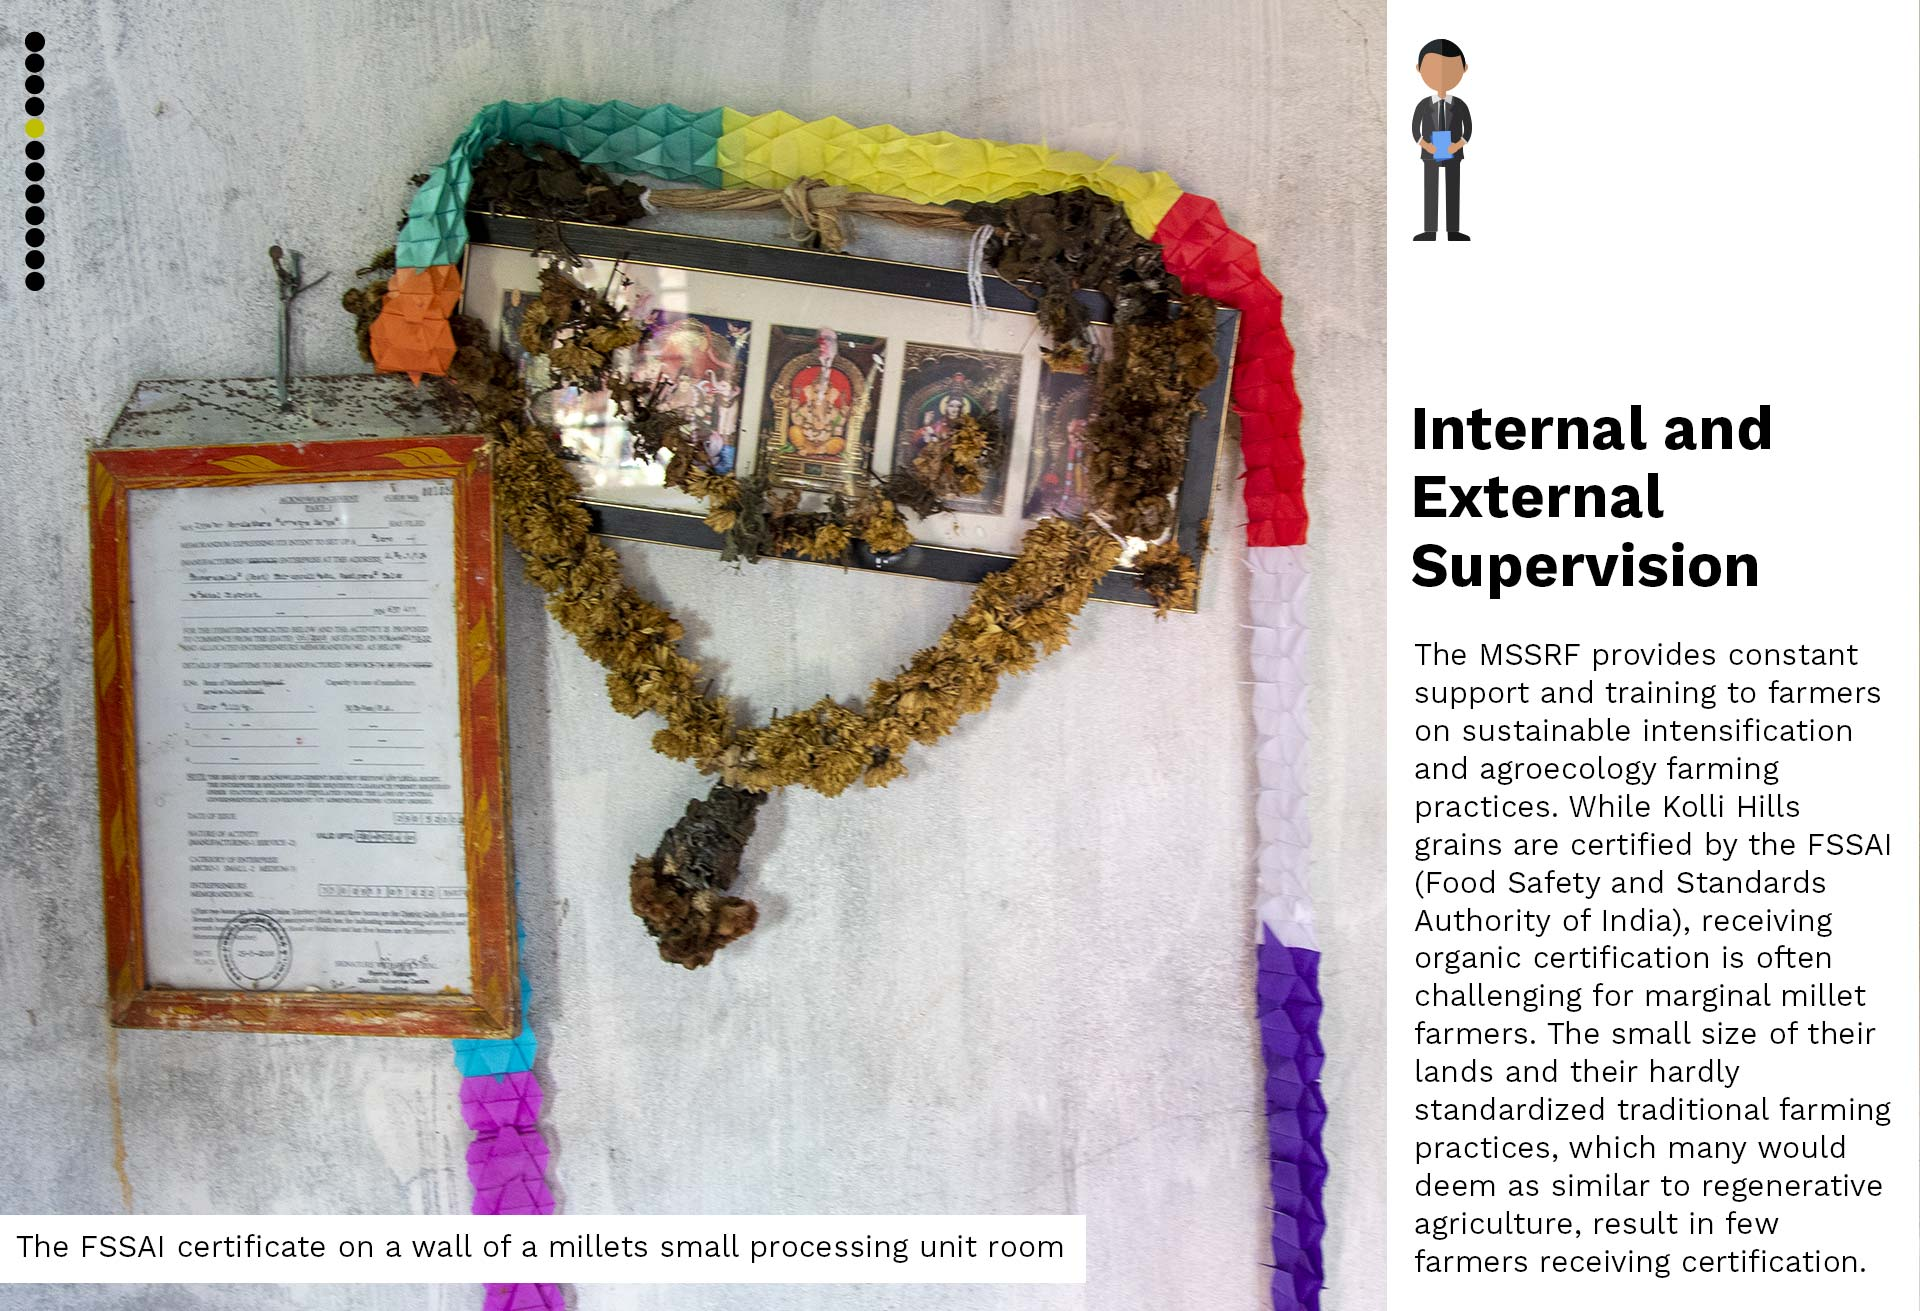 05-Internal and External Supervision